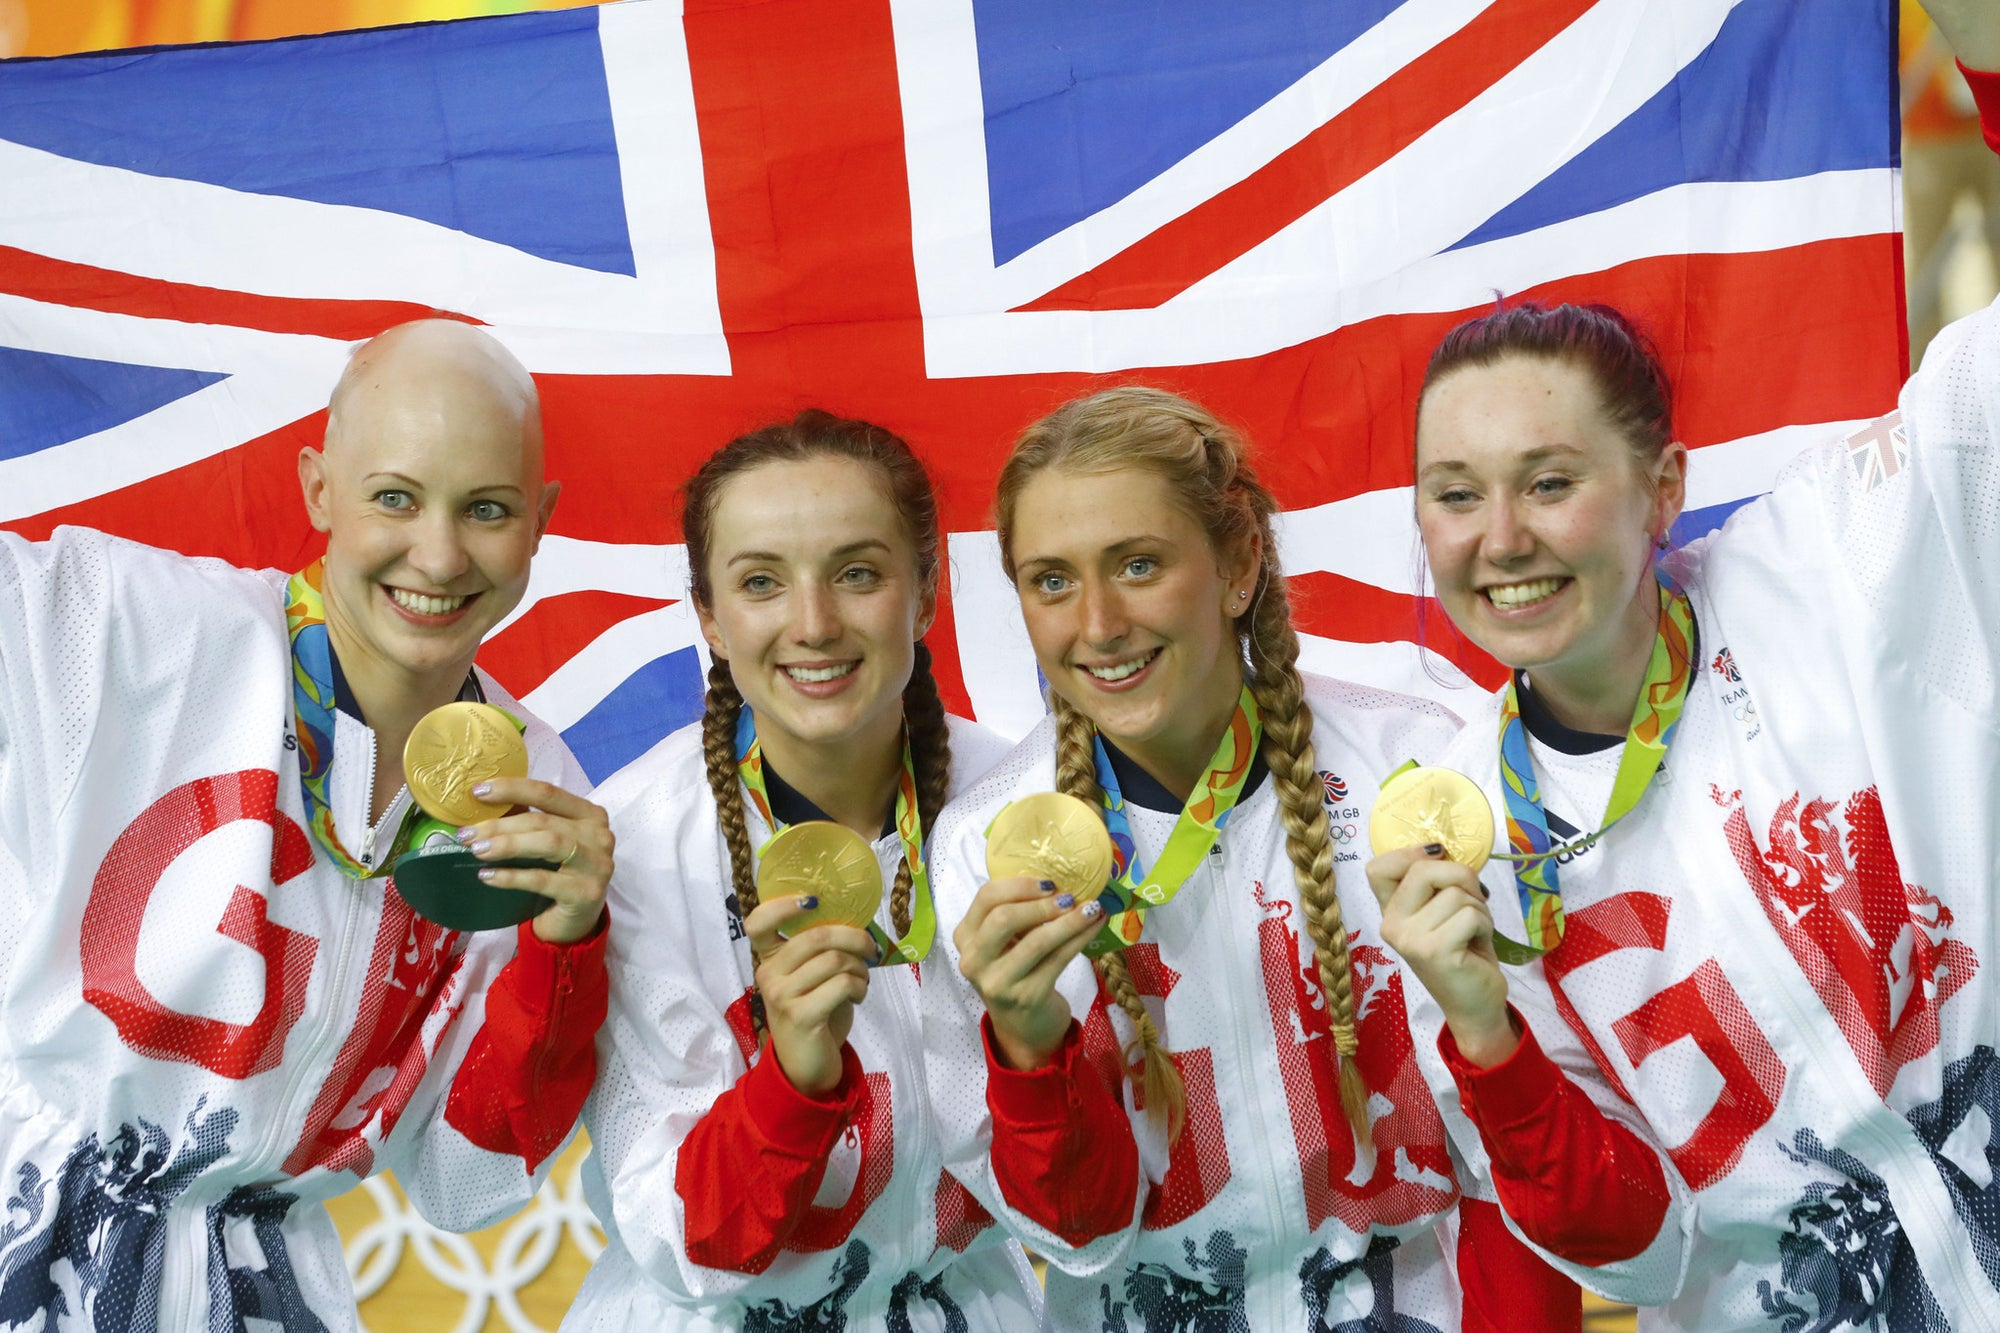 On the Significance of Team GB's Olympic Success